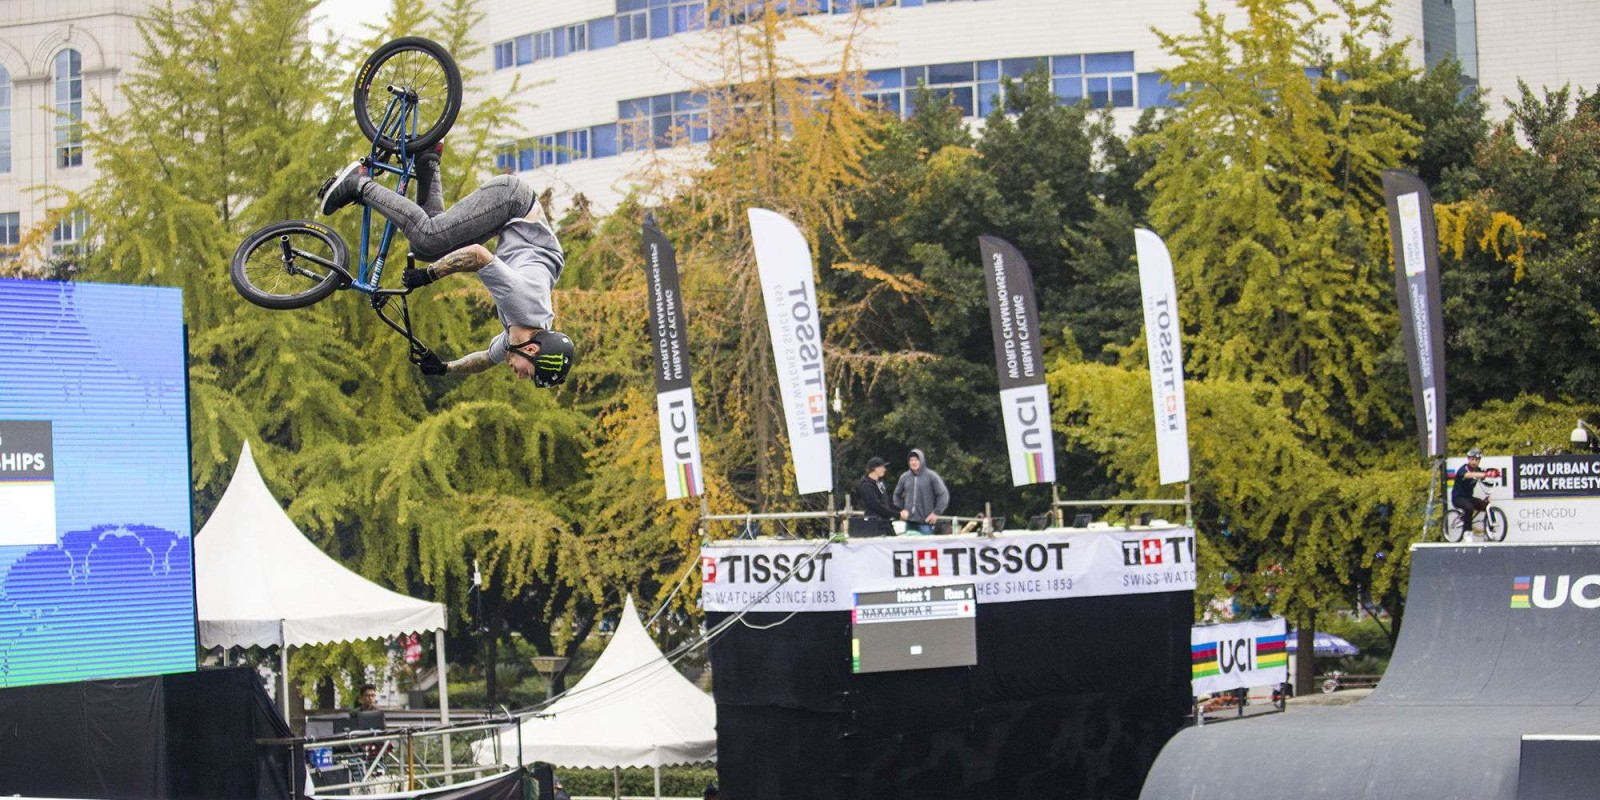 Image from the FISE World Series in Chengdu, China